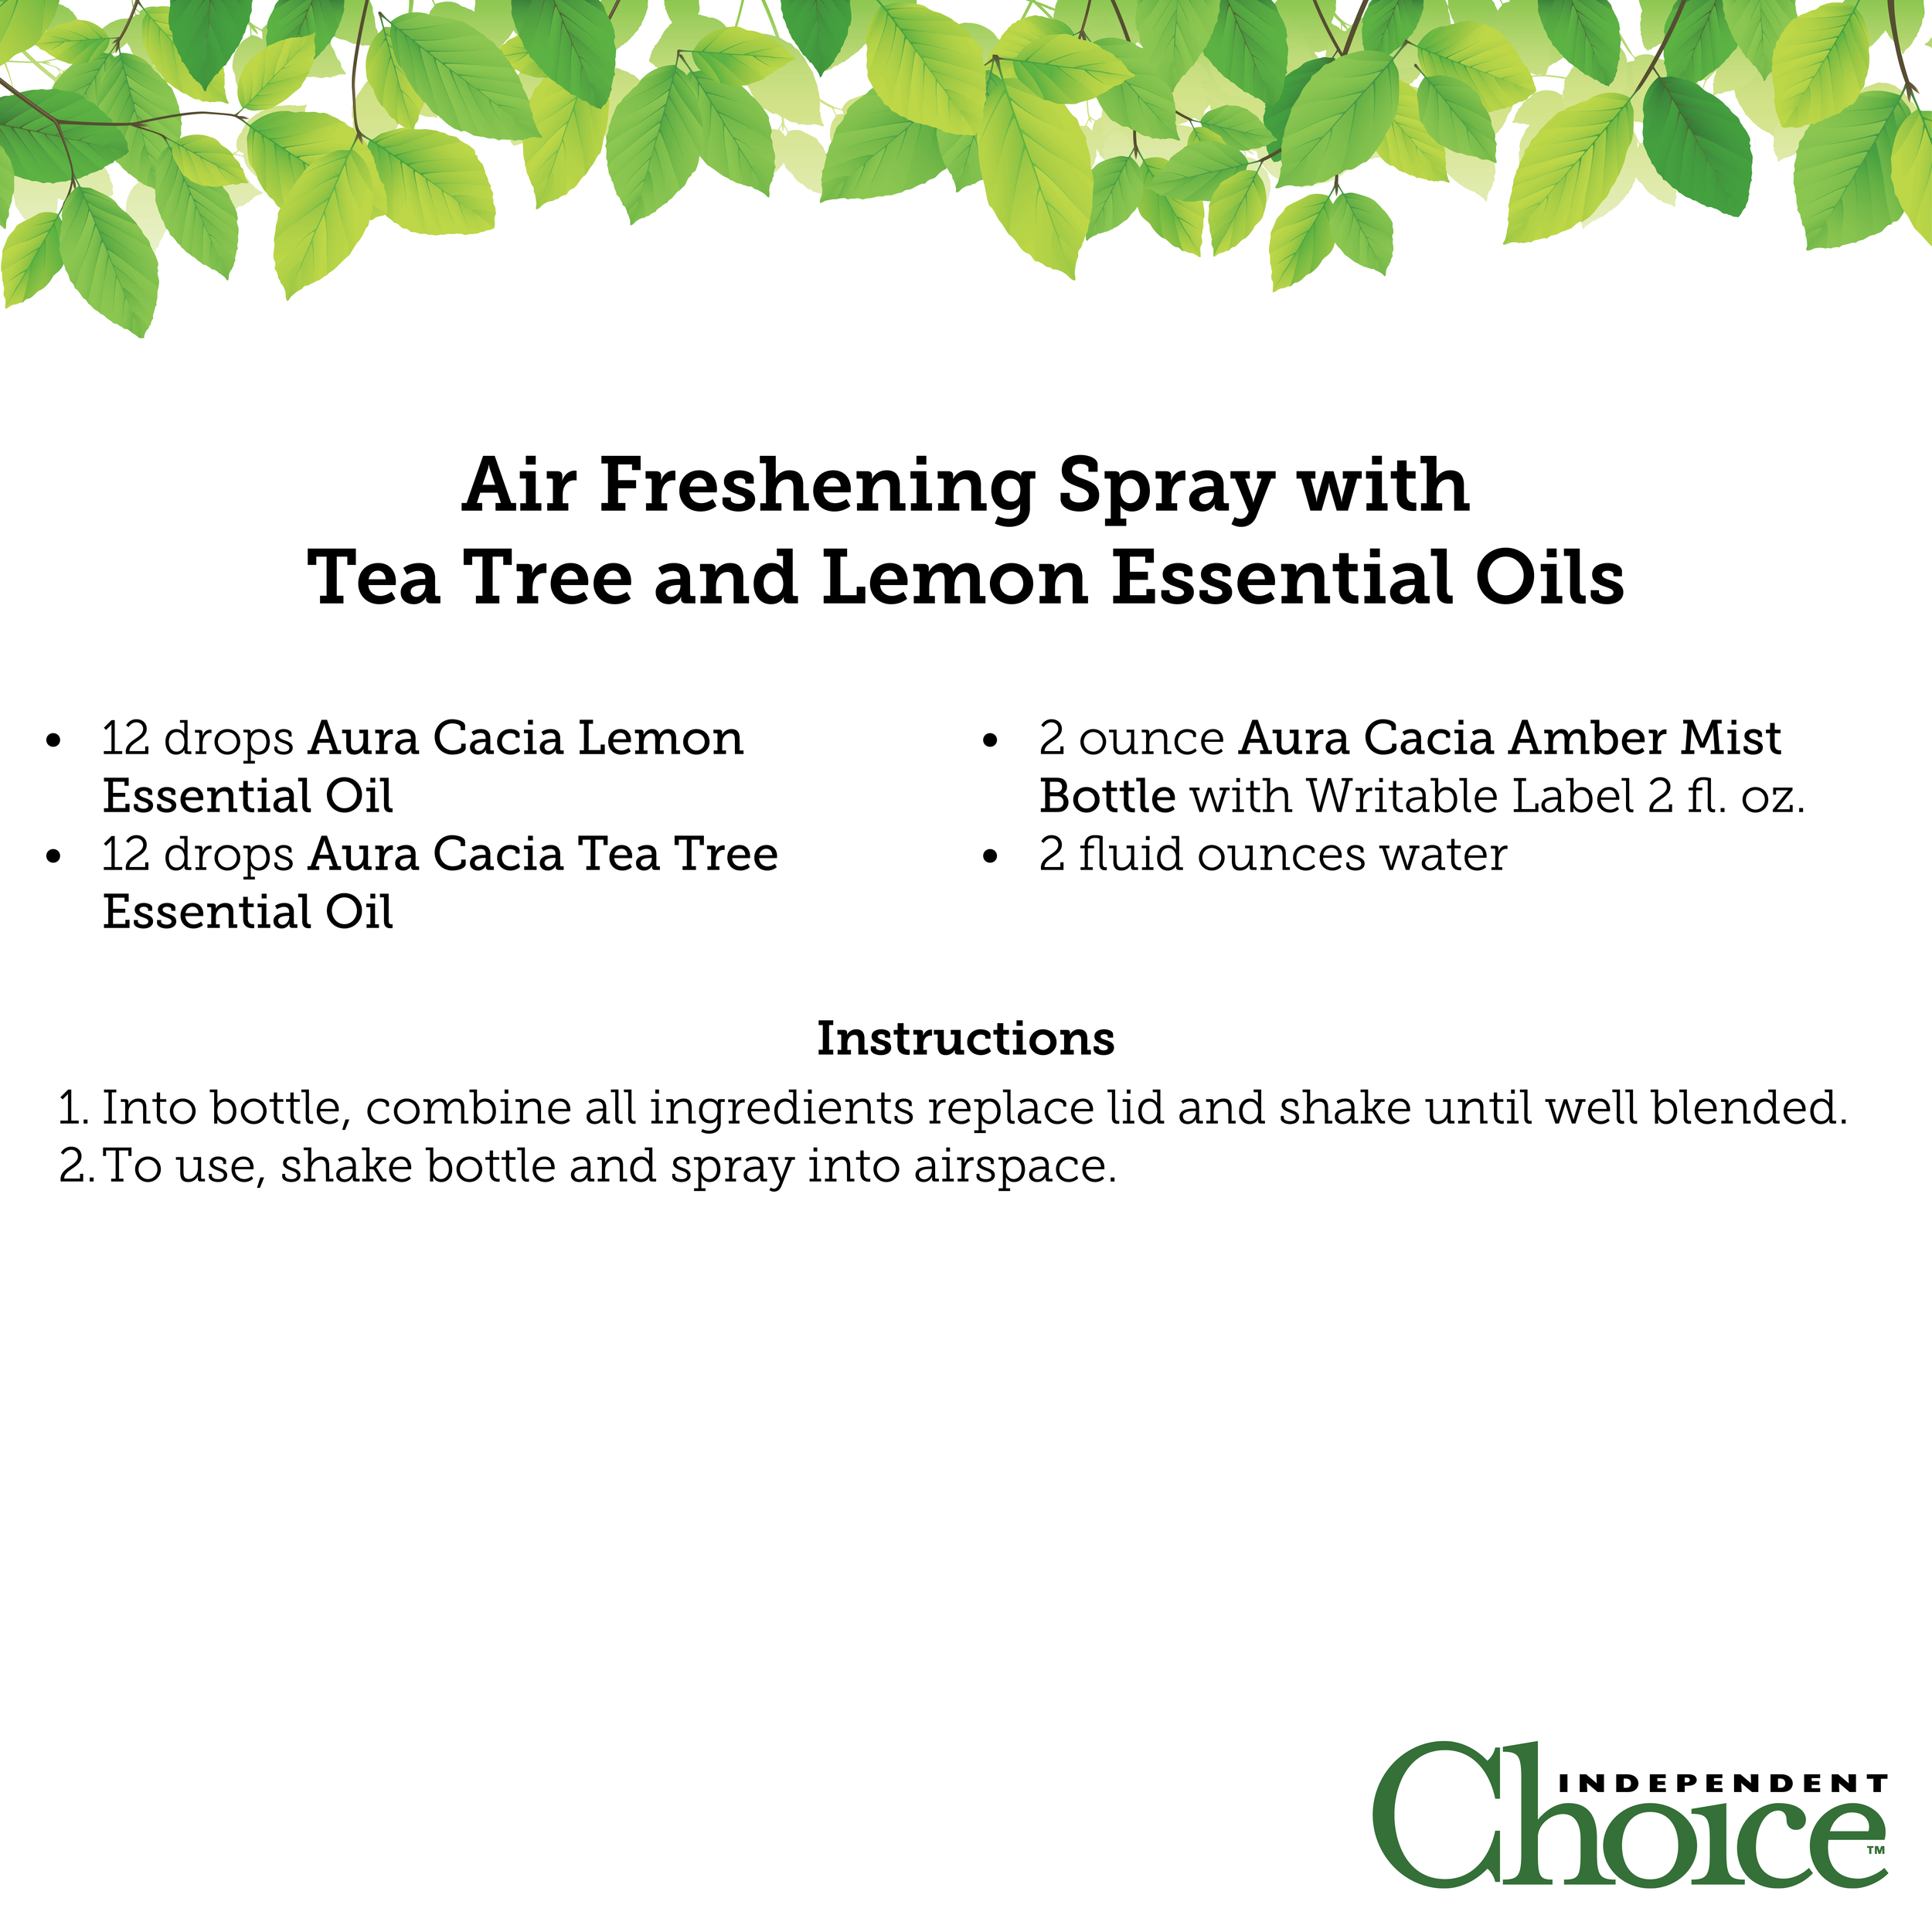 Air Freshening Spracy with Tea Tree and Lemon Essential Oils.png